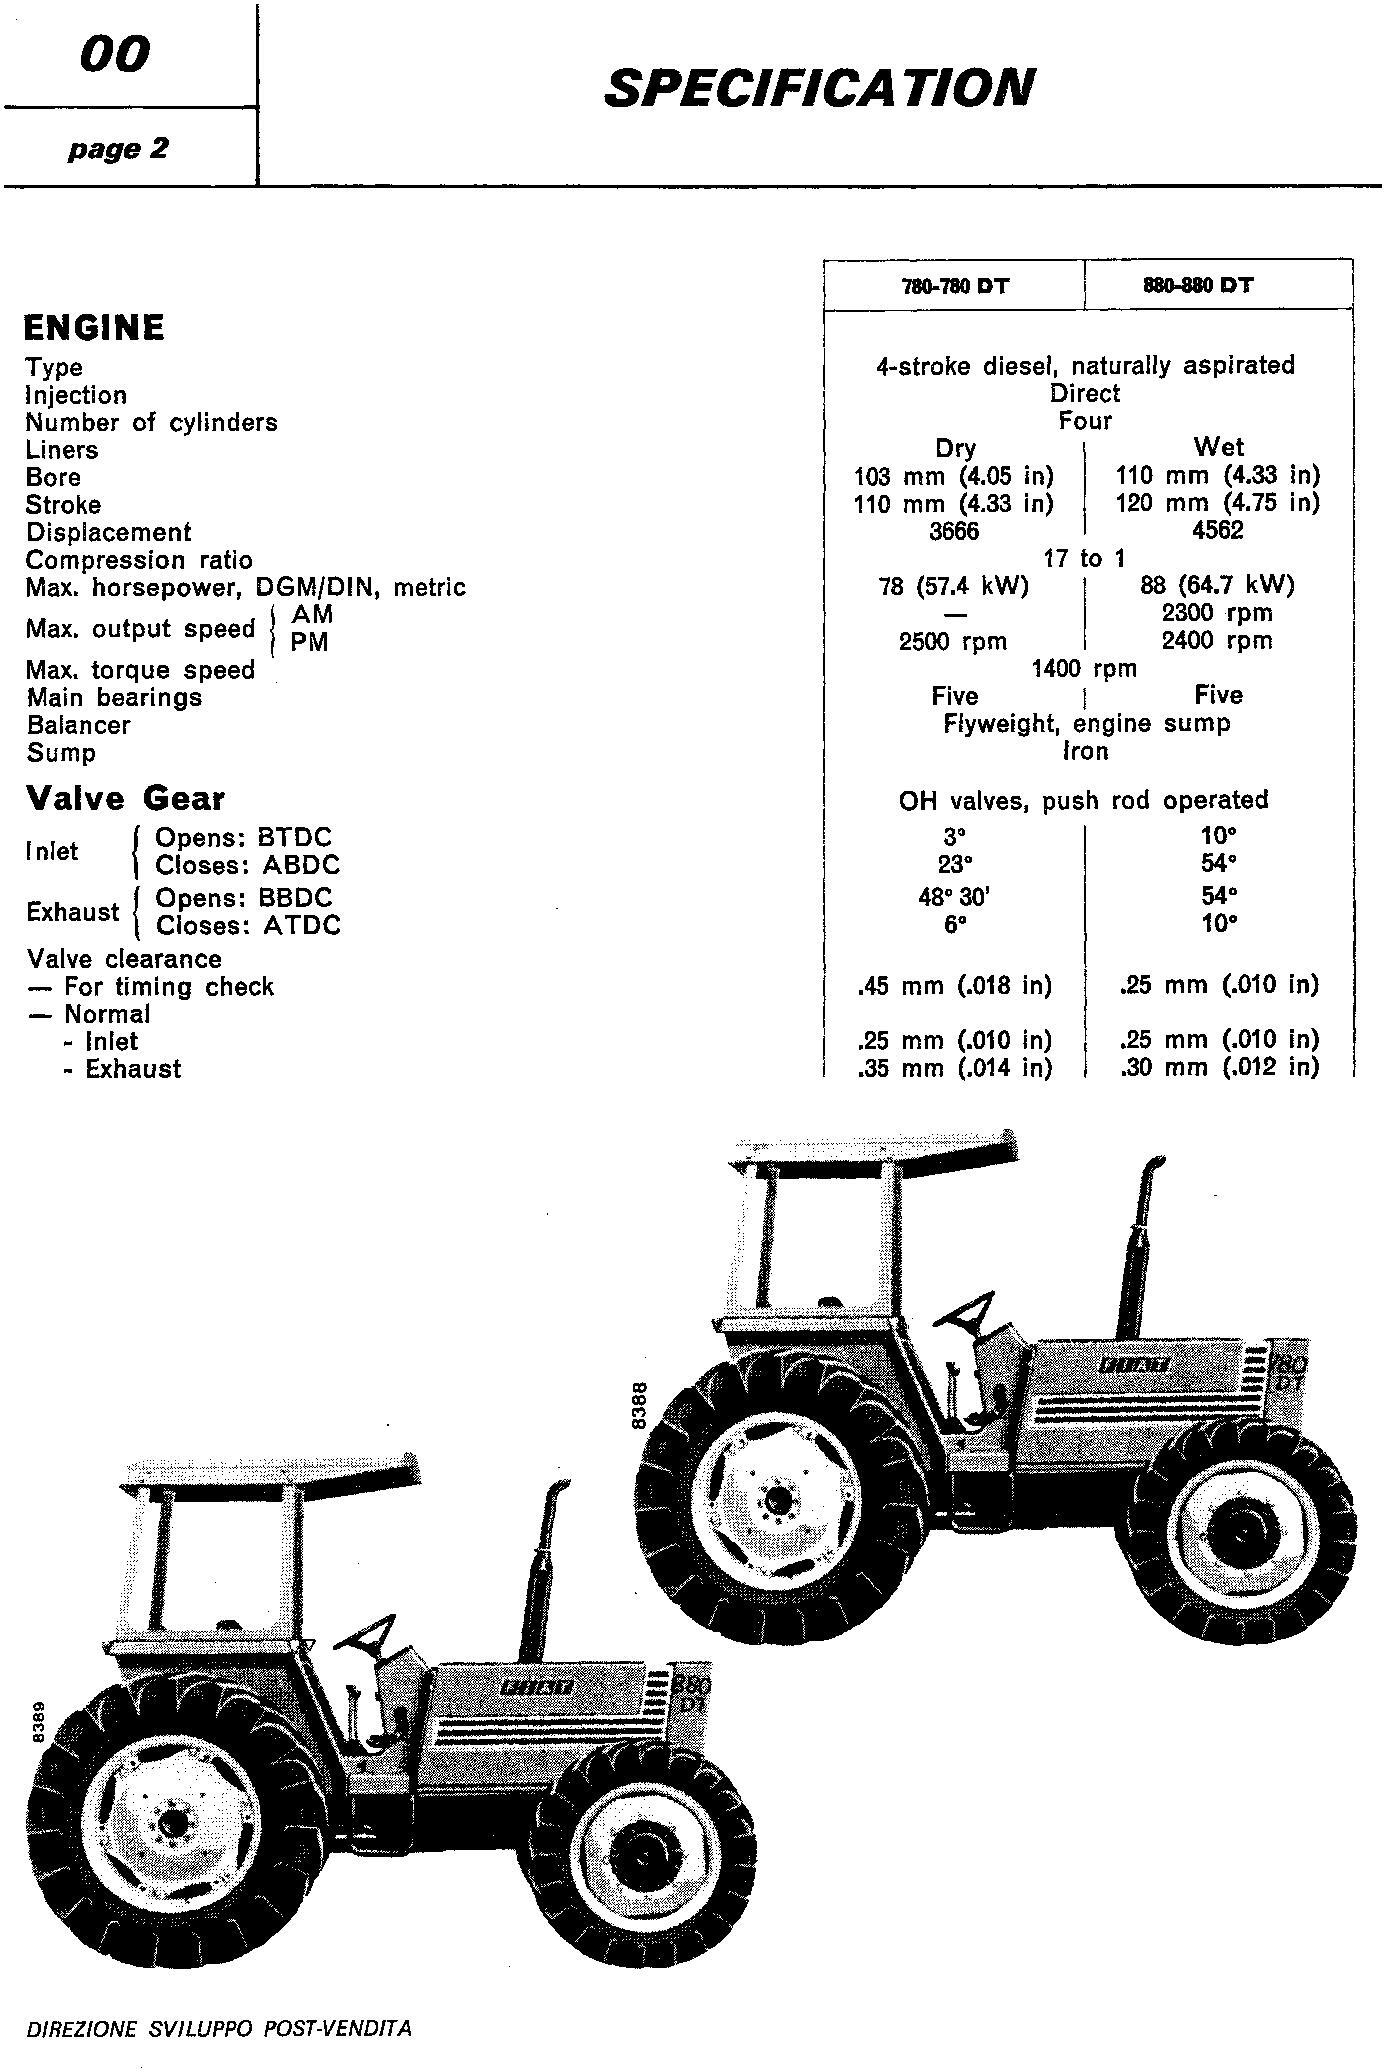 Fiat 780, 780DT, 880, 880DT Tractor Workshop Service